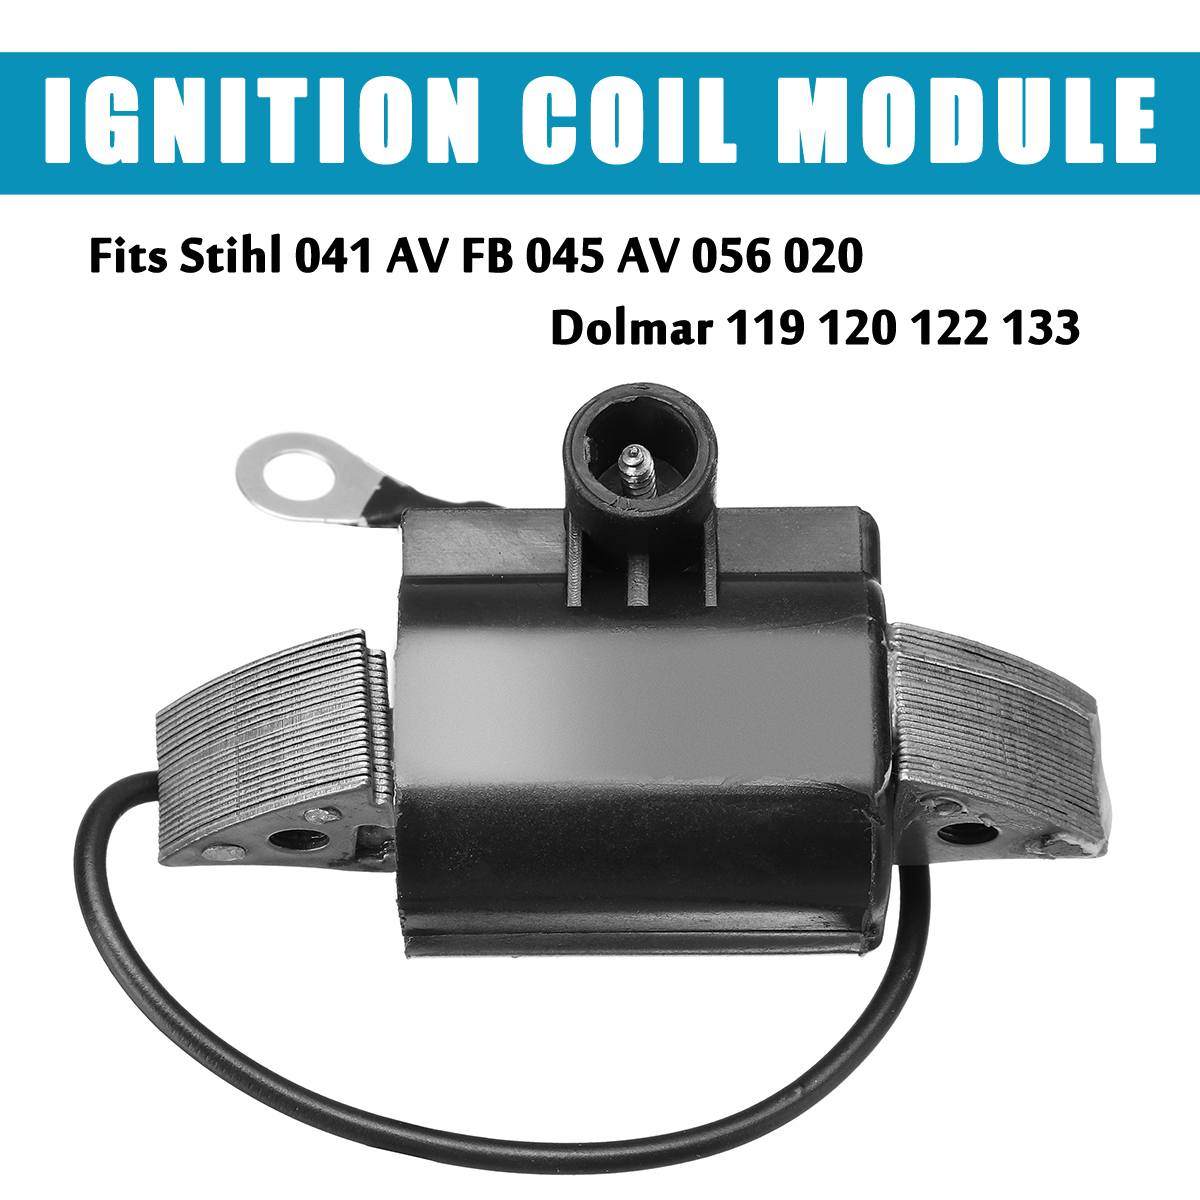 1Pcs Ignition Coil Module Fit For Stihl 041 AV FB 045 AV 056 020 Dolmar 119 120 122 133 Replacement Accessories